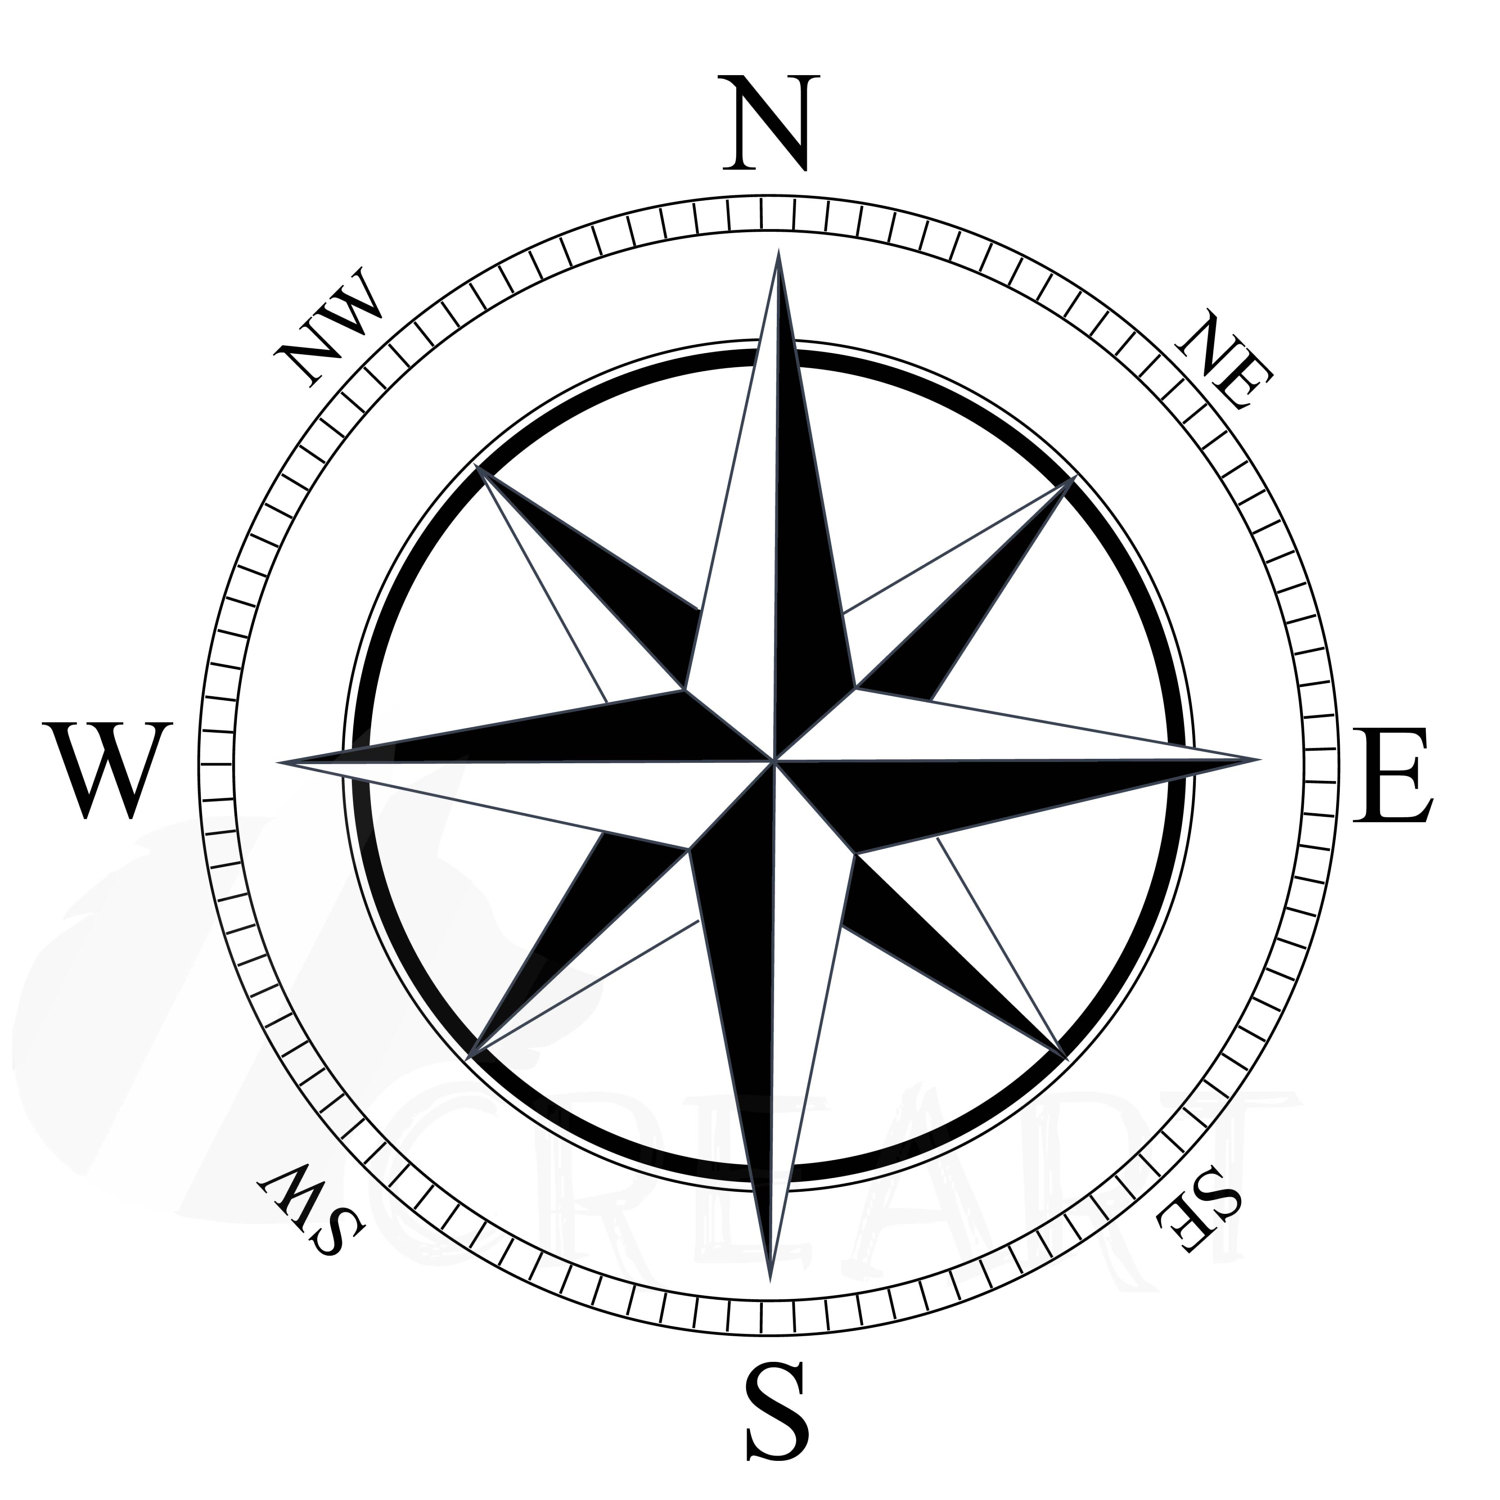 1500x1500 Compass Silhouette Pack Eps, Png, Jpg, Pdf, Svg, Vector